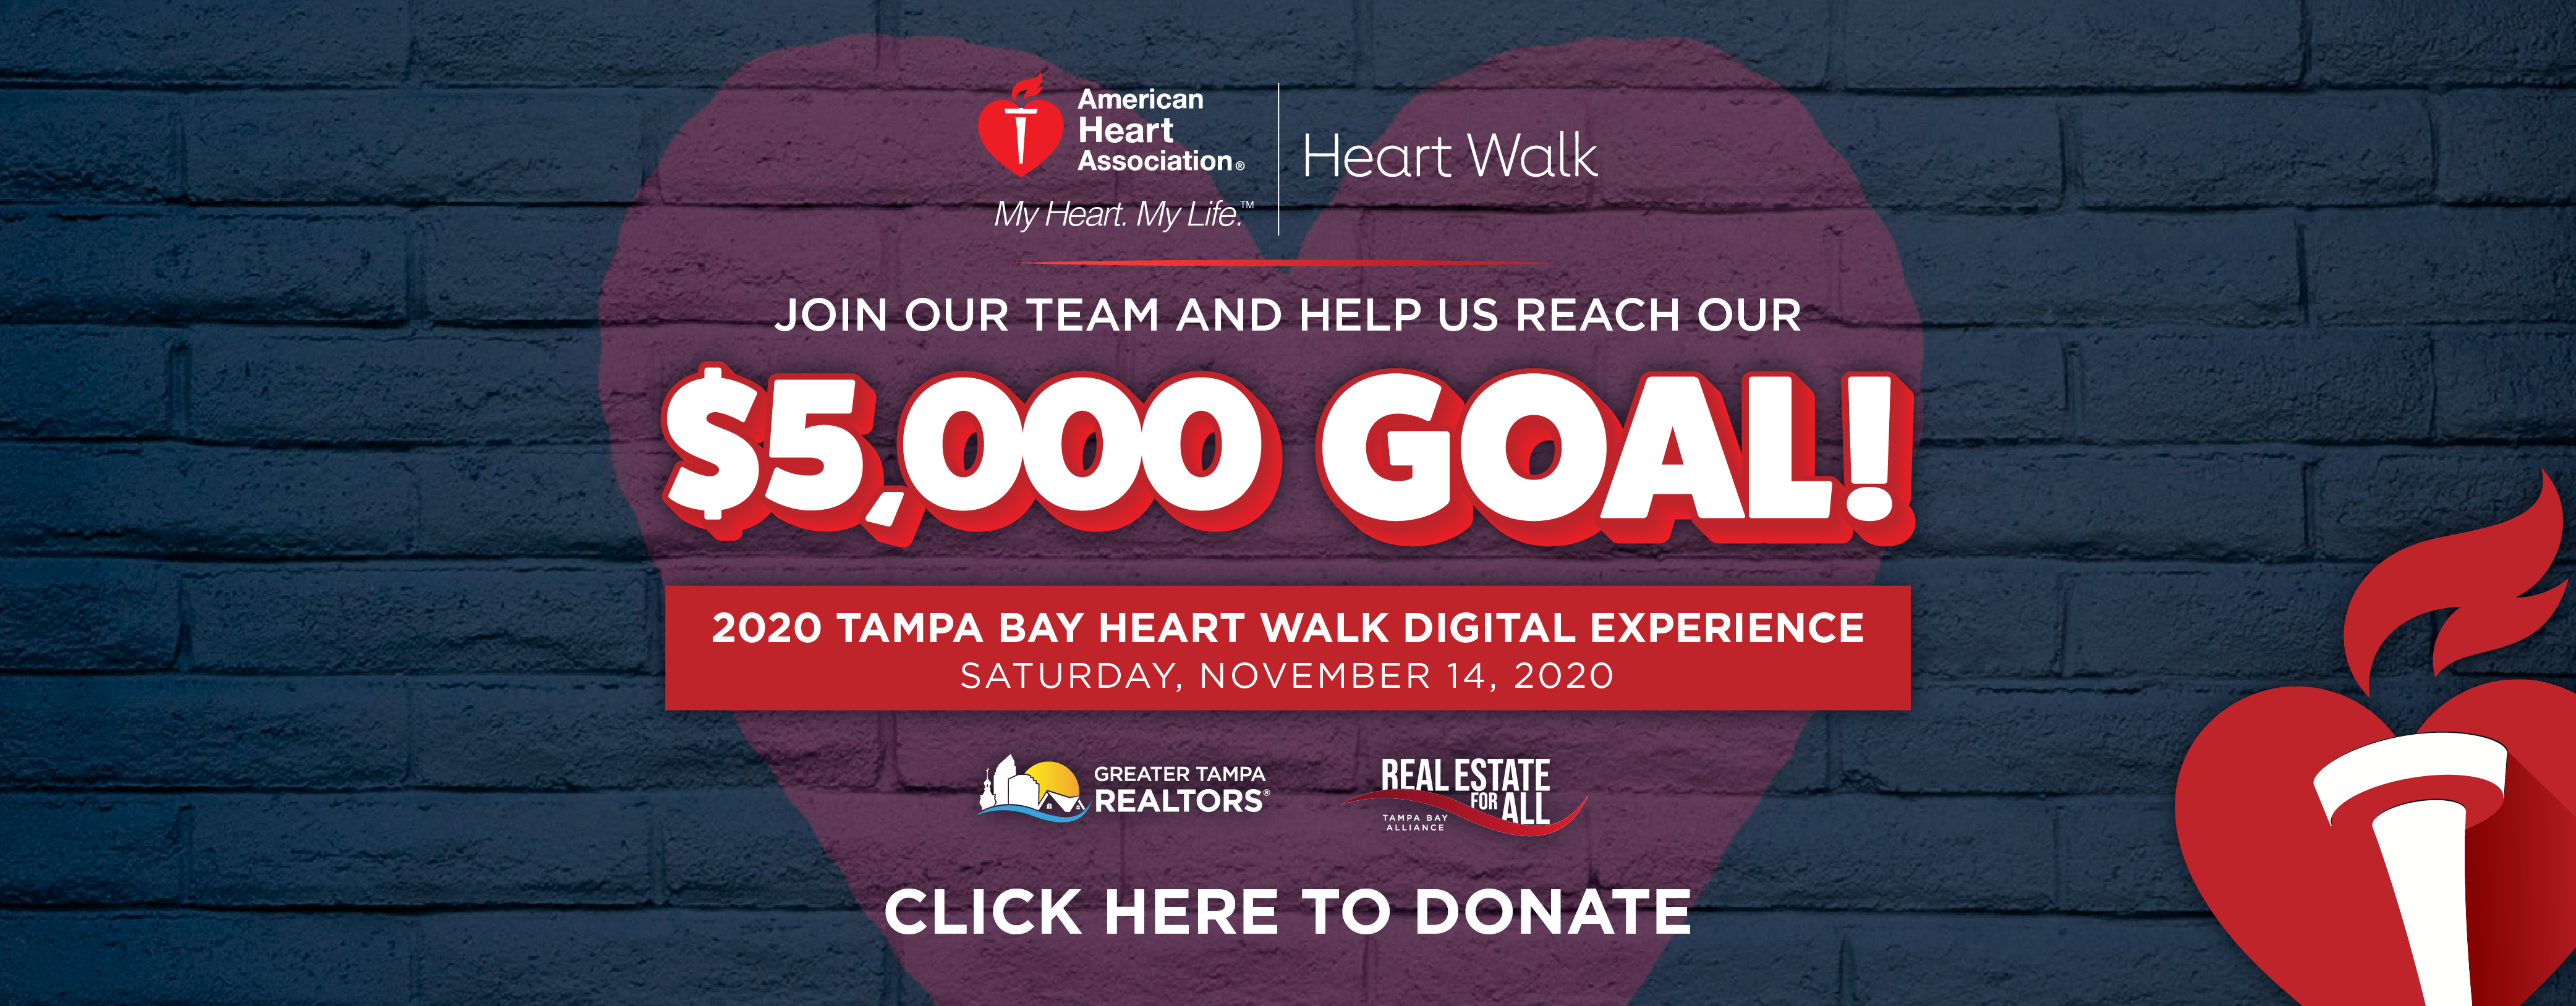 2020 Tampa Bay Heart Walk Digital Experience, Saturday, November 14, 2020. Join our team and help us reach our $5,000 Goal! Click here to donate